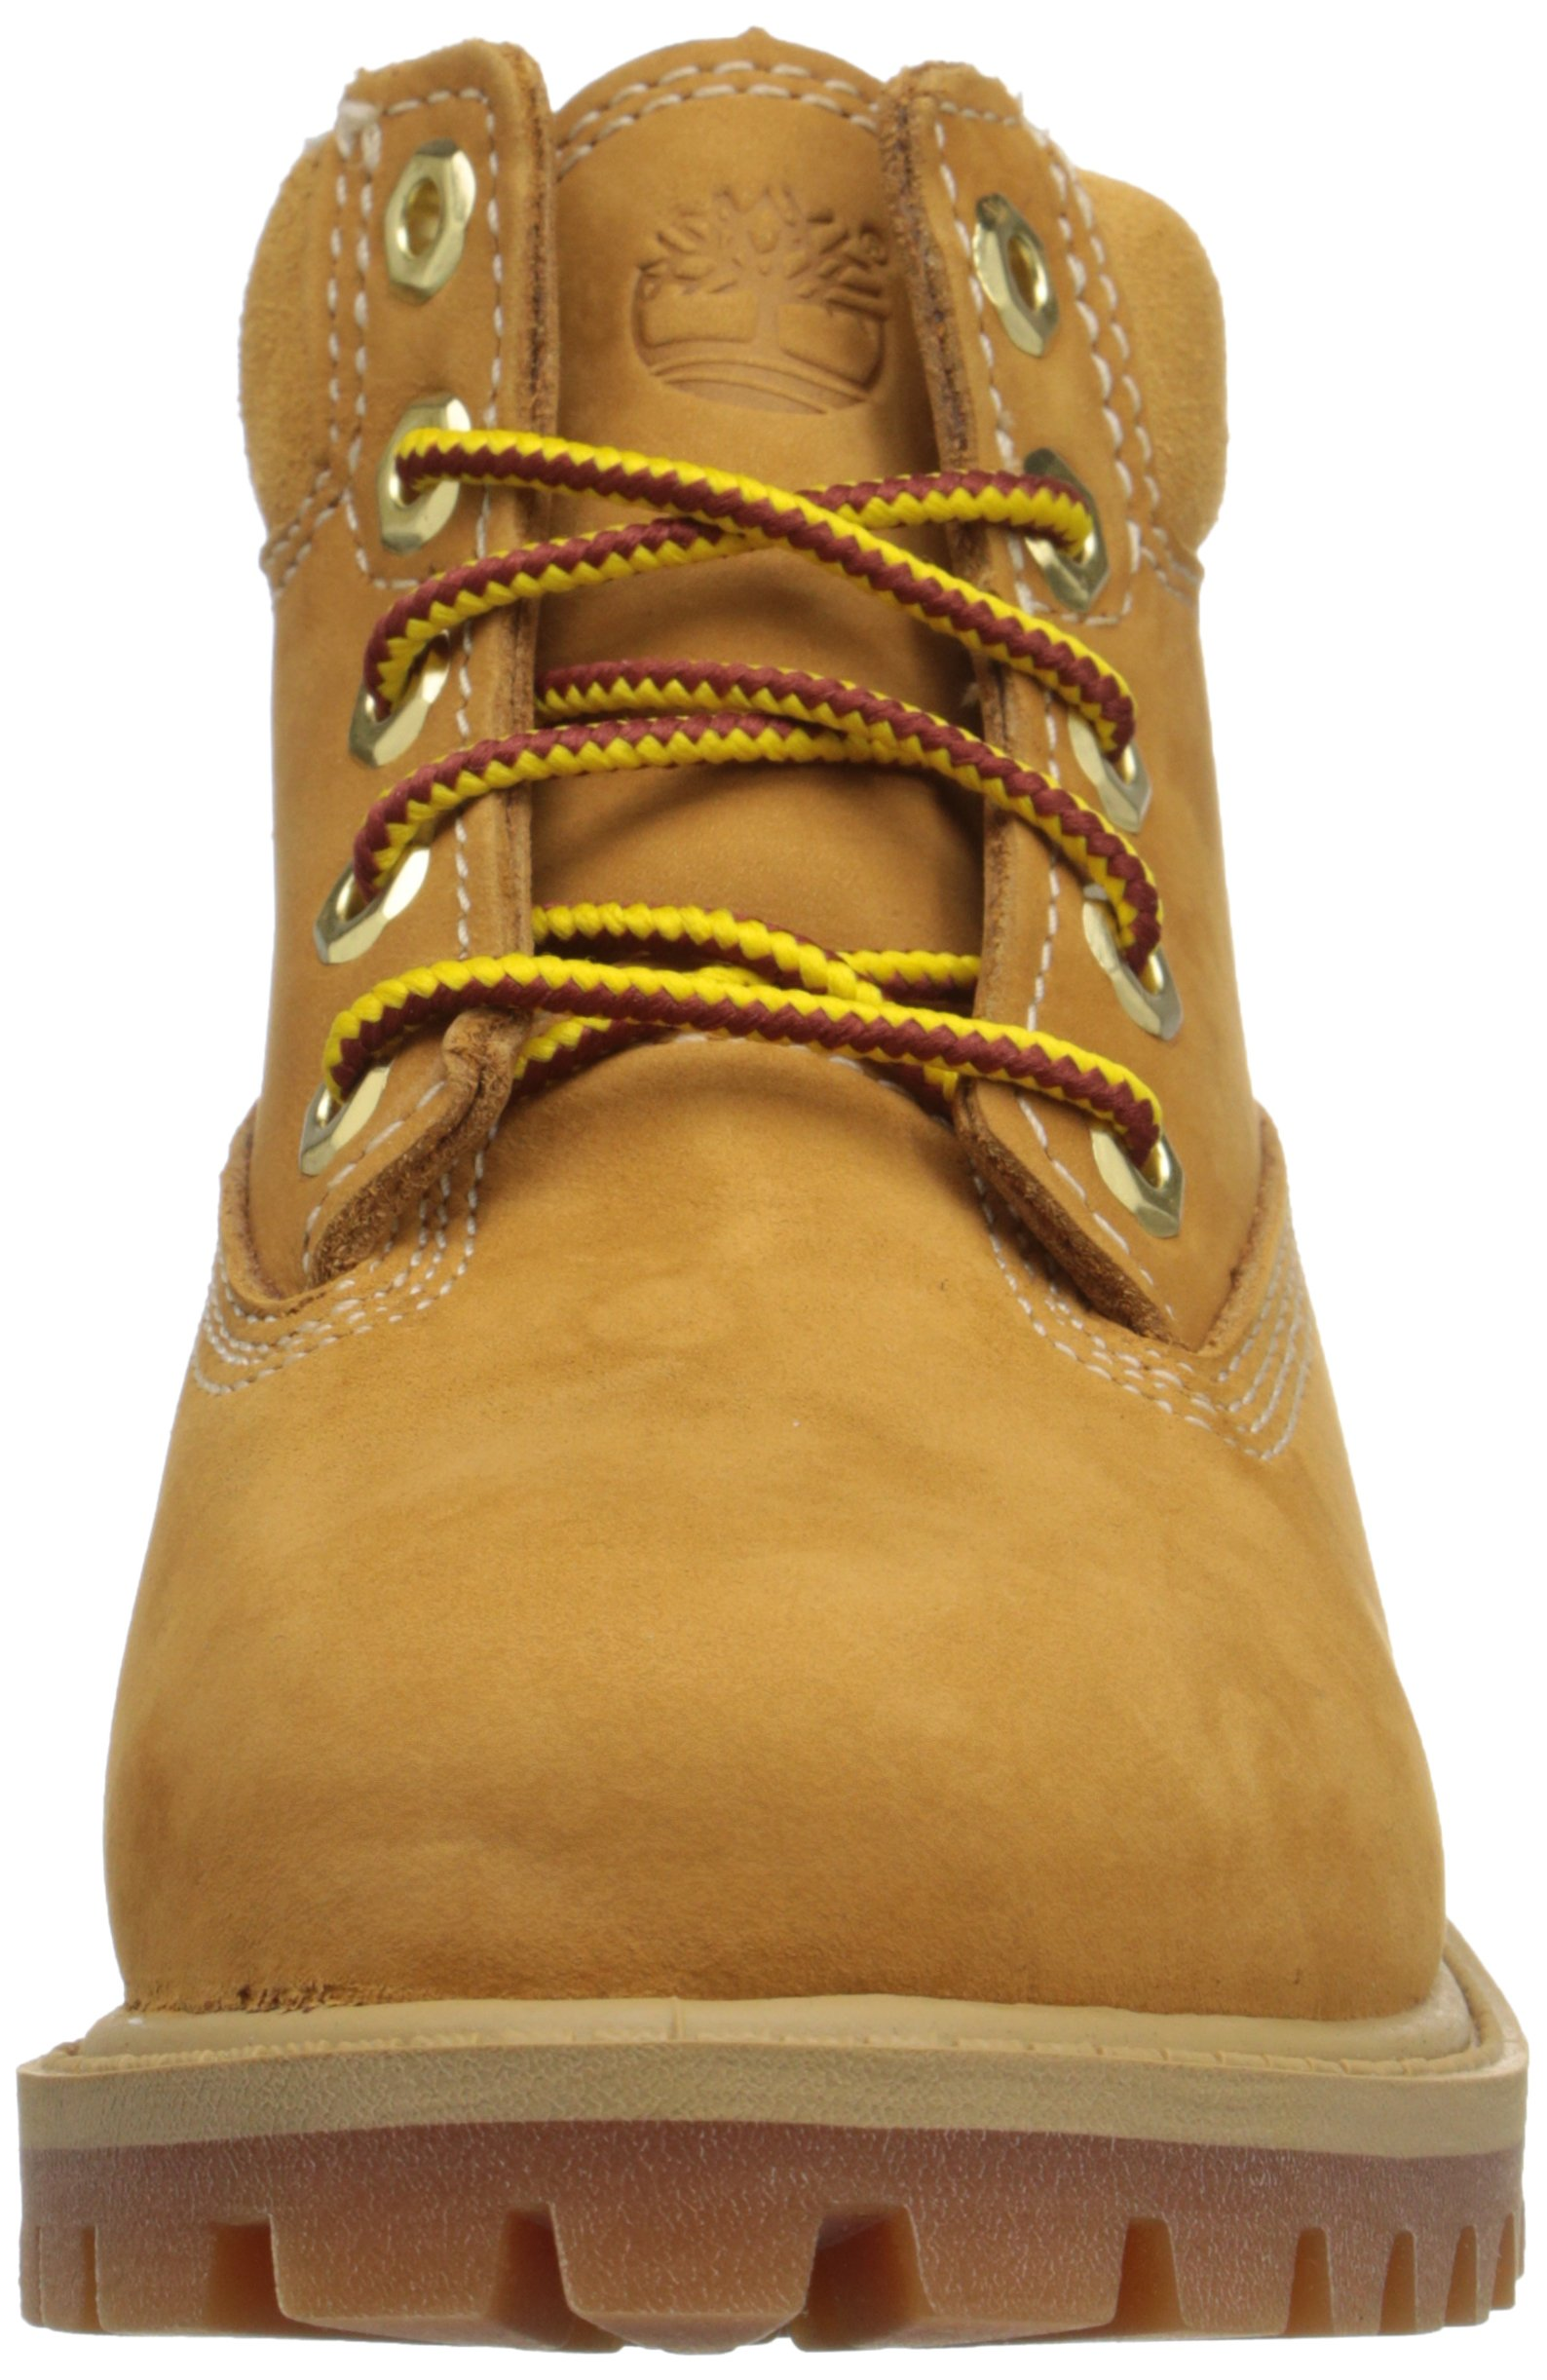 Timberland 6 Inch Premium With Faux Shearling Boot (Toddler/Little Kid/Big Kid), Wheat Nubuck, 4 M US Big Kid by Timberland (Image #4)